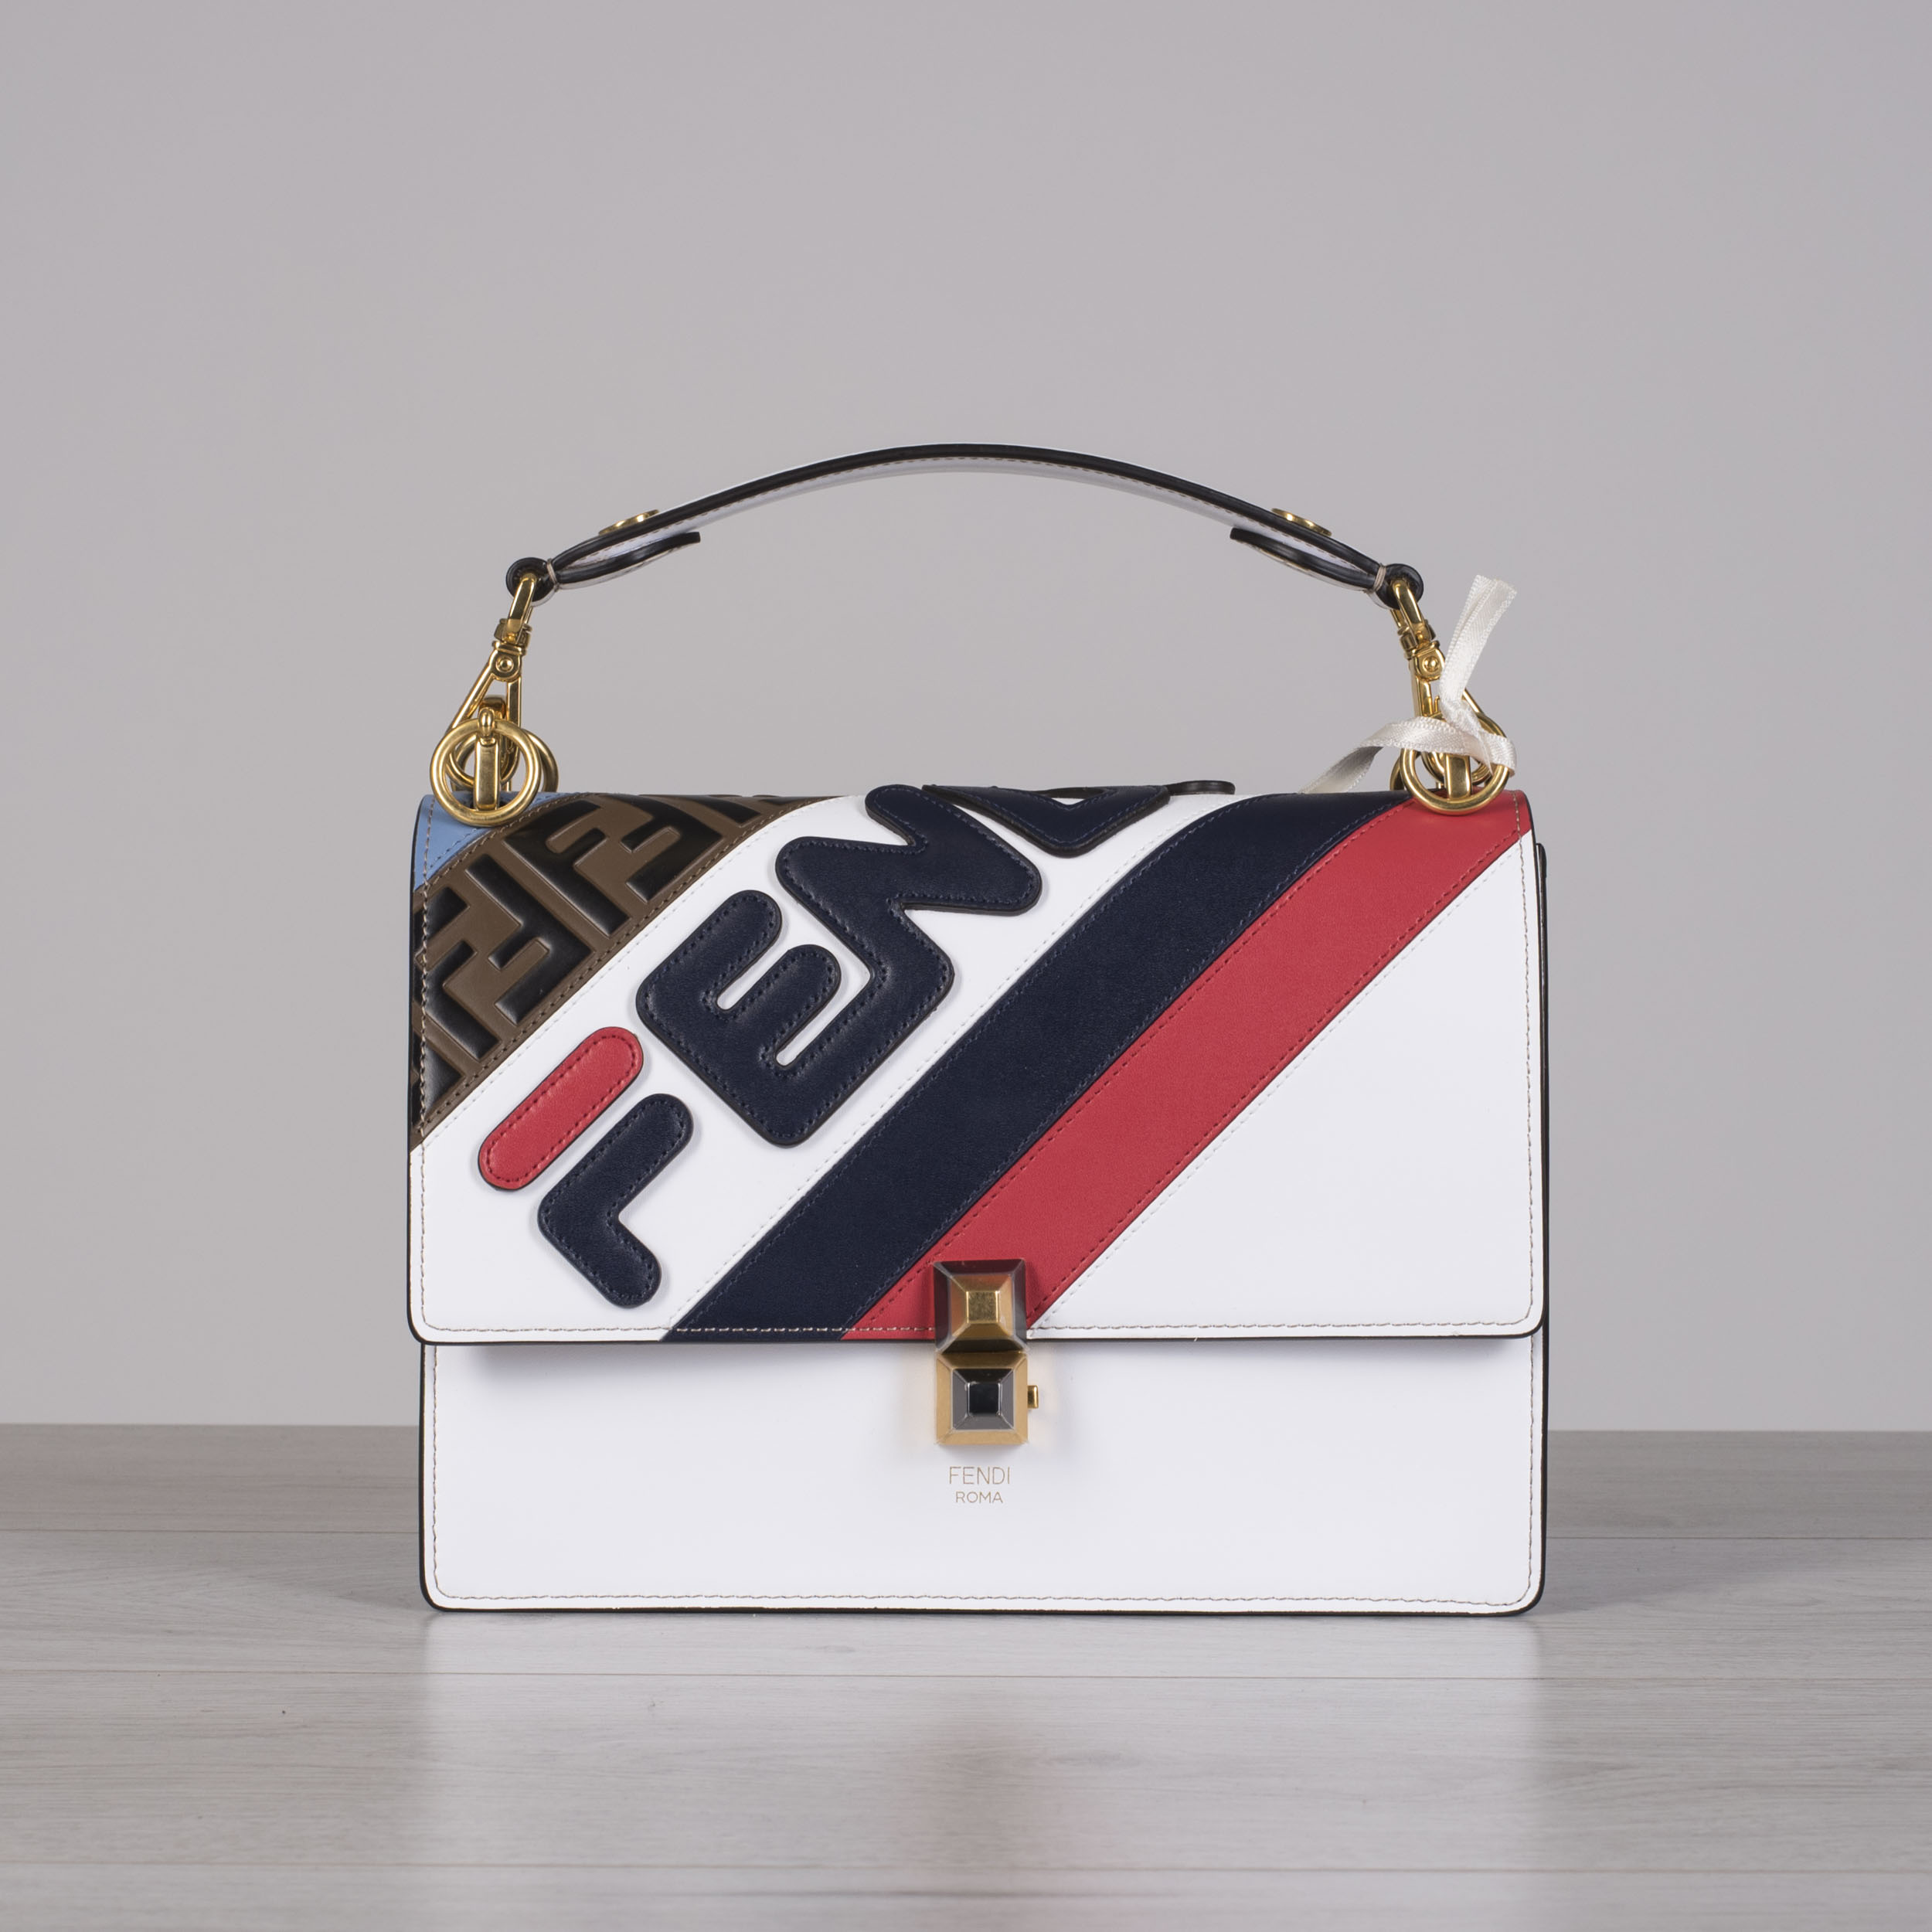 6ad46323a6dc Details about FENDI x FILA 2890  Multi Color Kan I Bag With Fendi Logo  Mania   FF Stripe